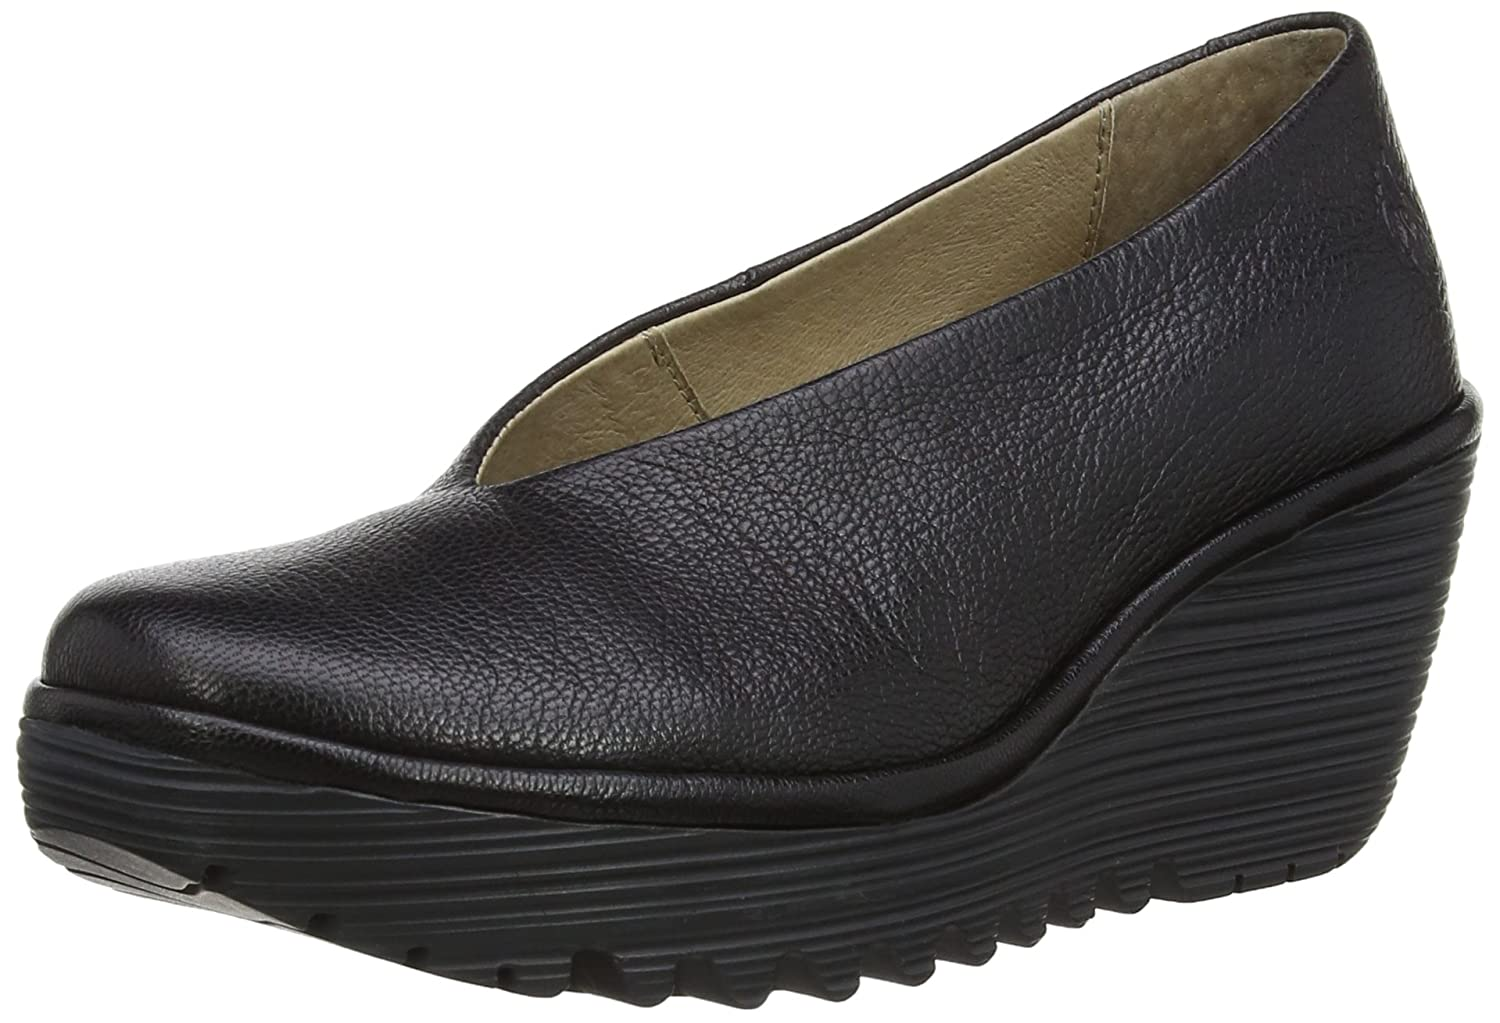 FLY London Women's Yaz Wedge Pump B00J9C27Q0 41 EU/10-10.5 M US|Black Mousse